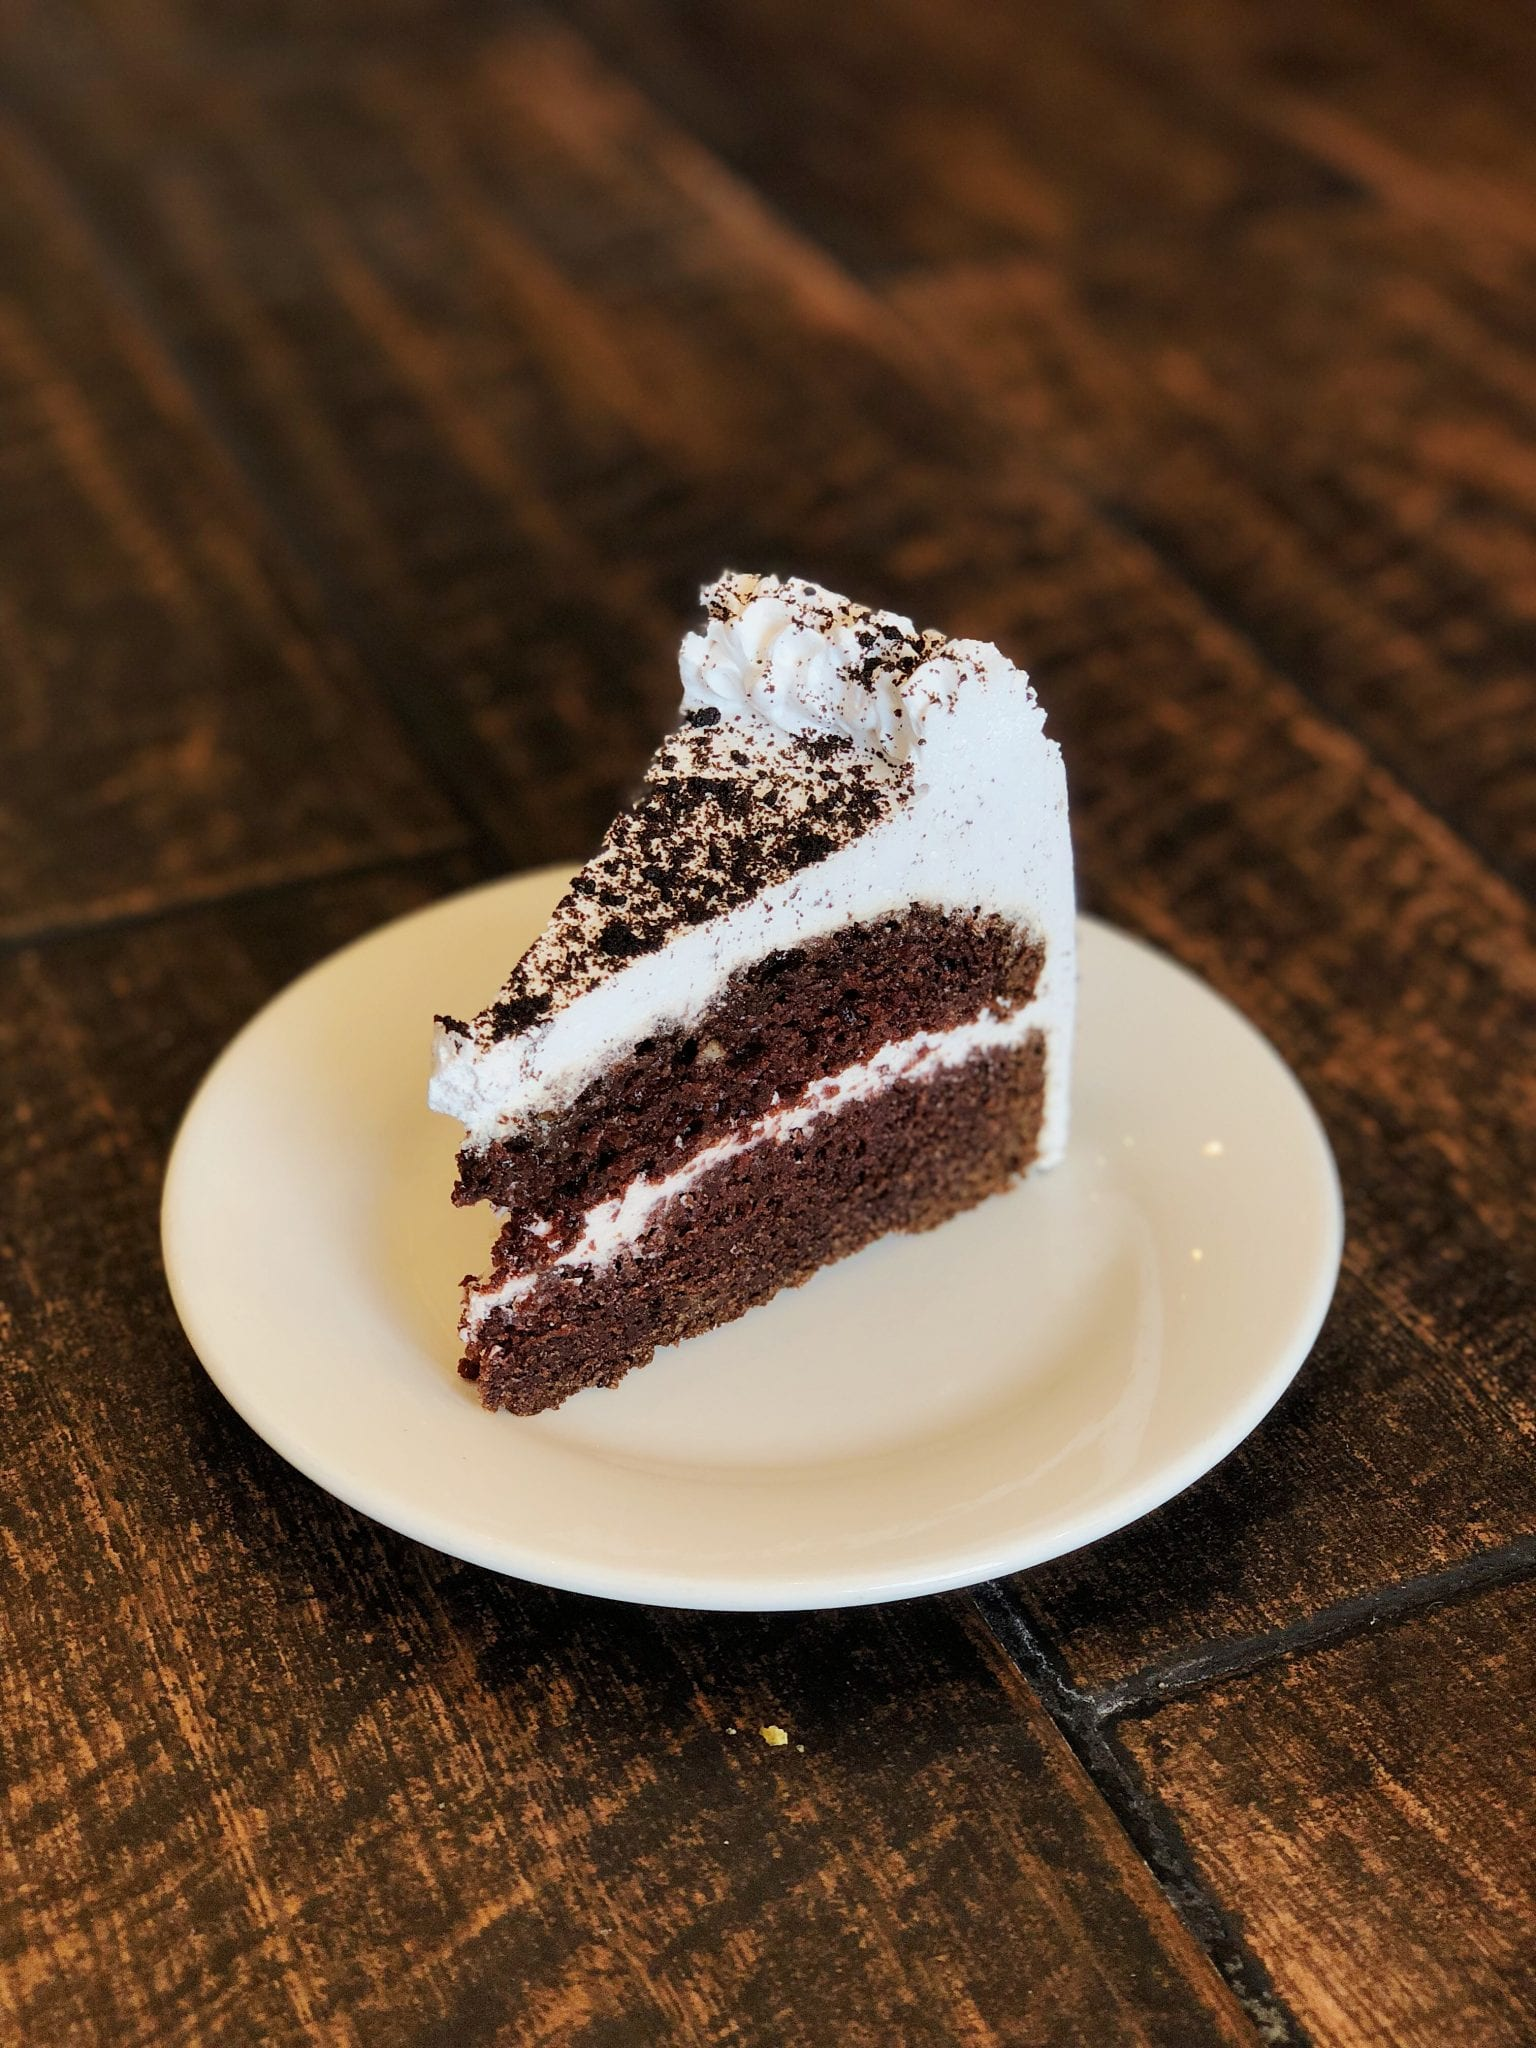 Oreo Kuchen Vegan Sweet Alternatives Best Vegan Desserts In The Tri Valley